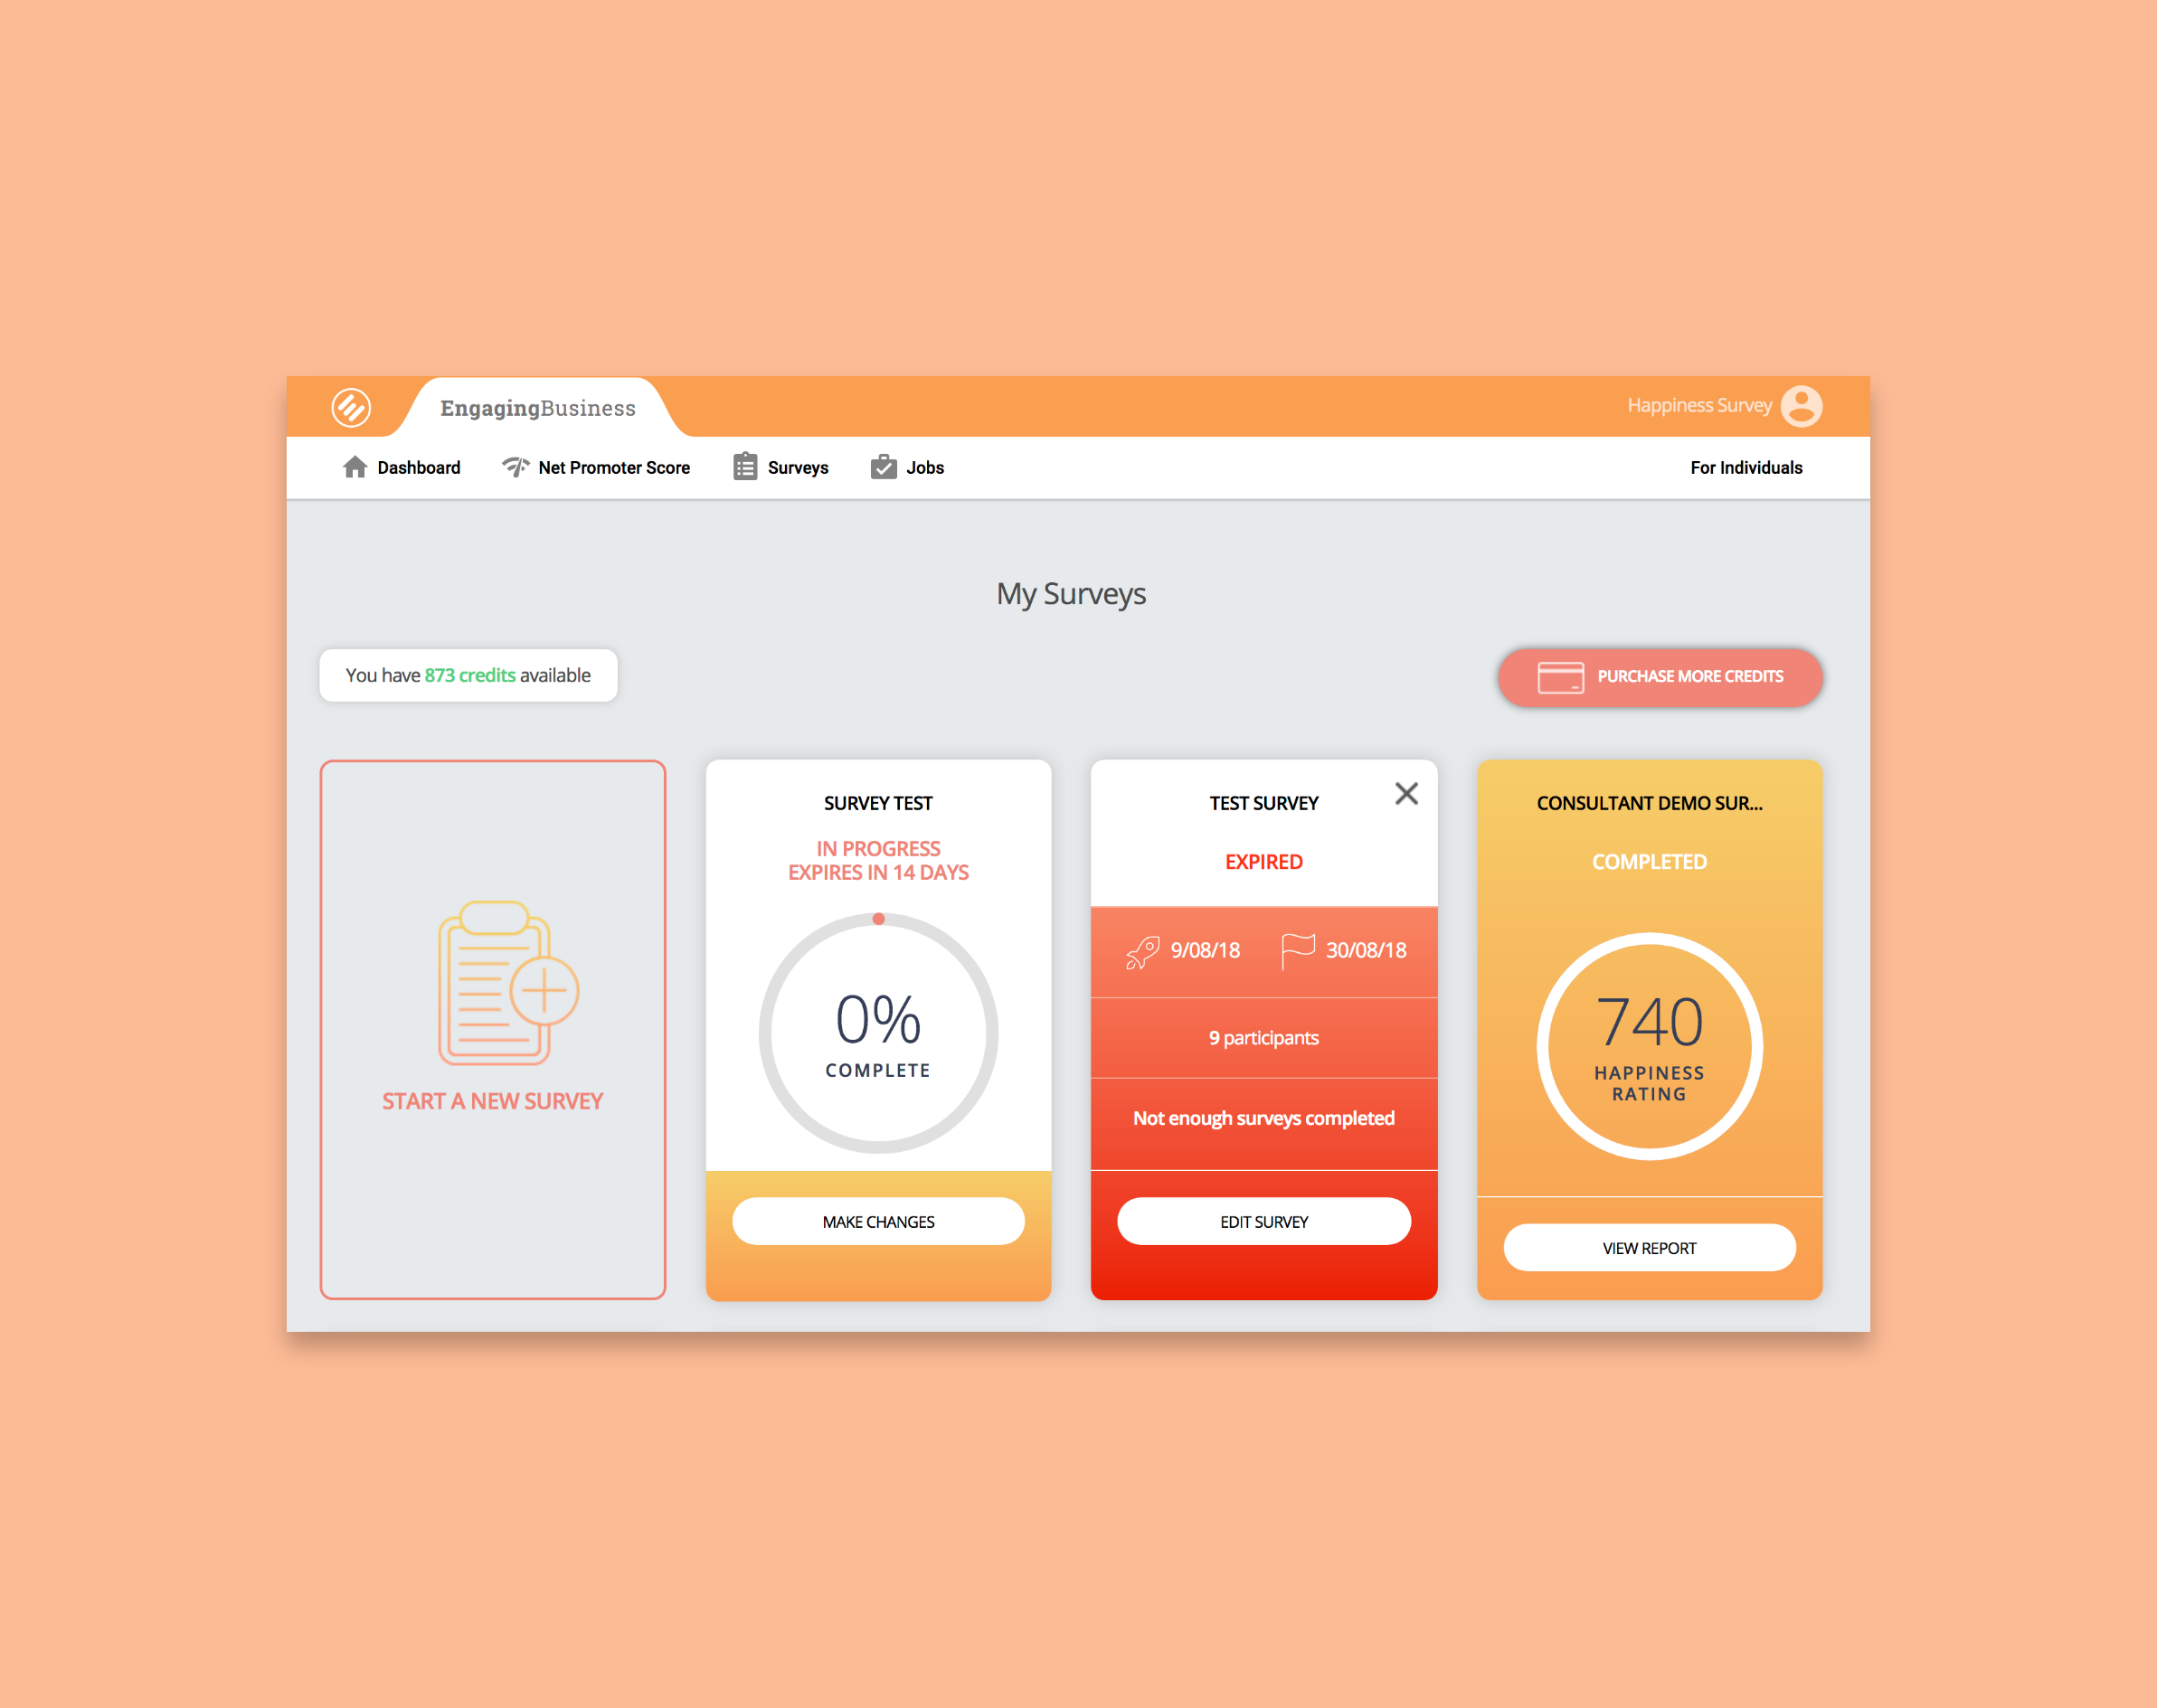 Engaging Business Dashboard